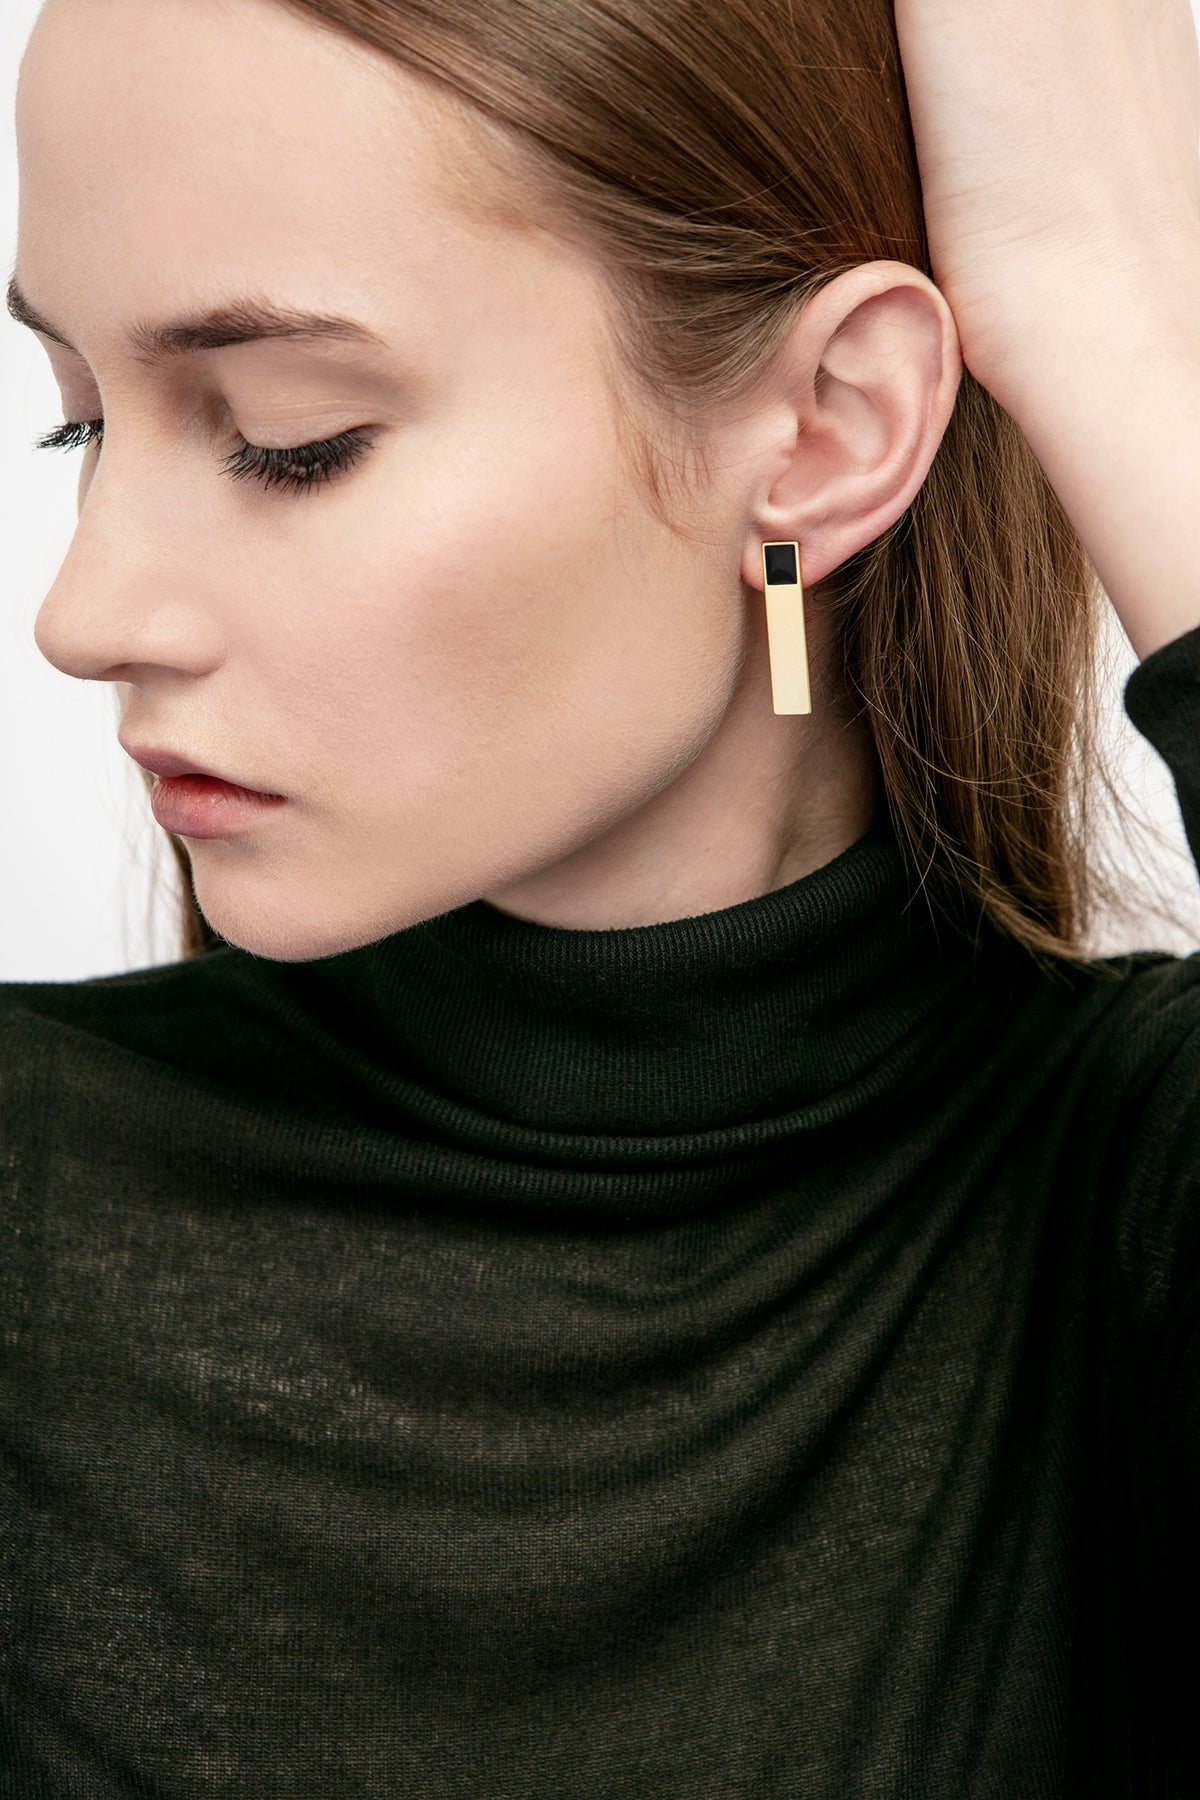 Image of Etto Earrings • Stainless steel • Silver • Black + Yellow